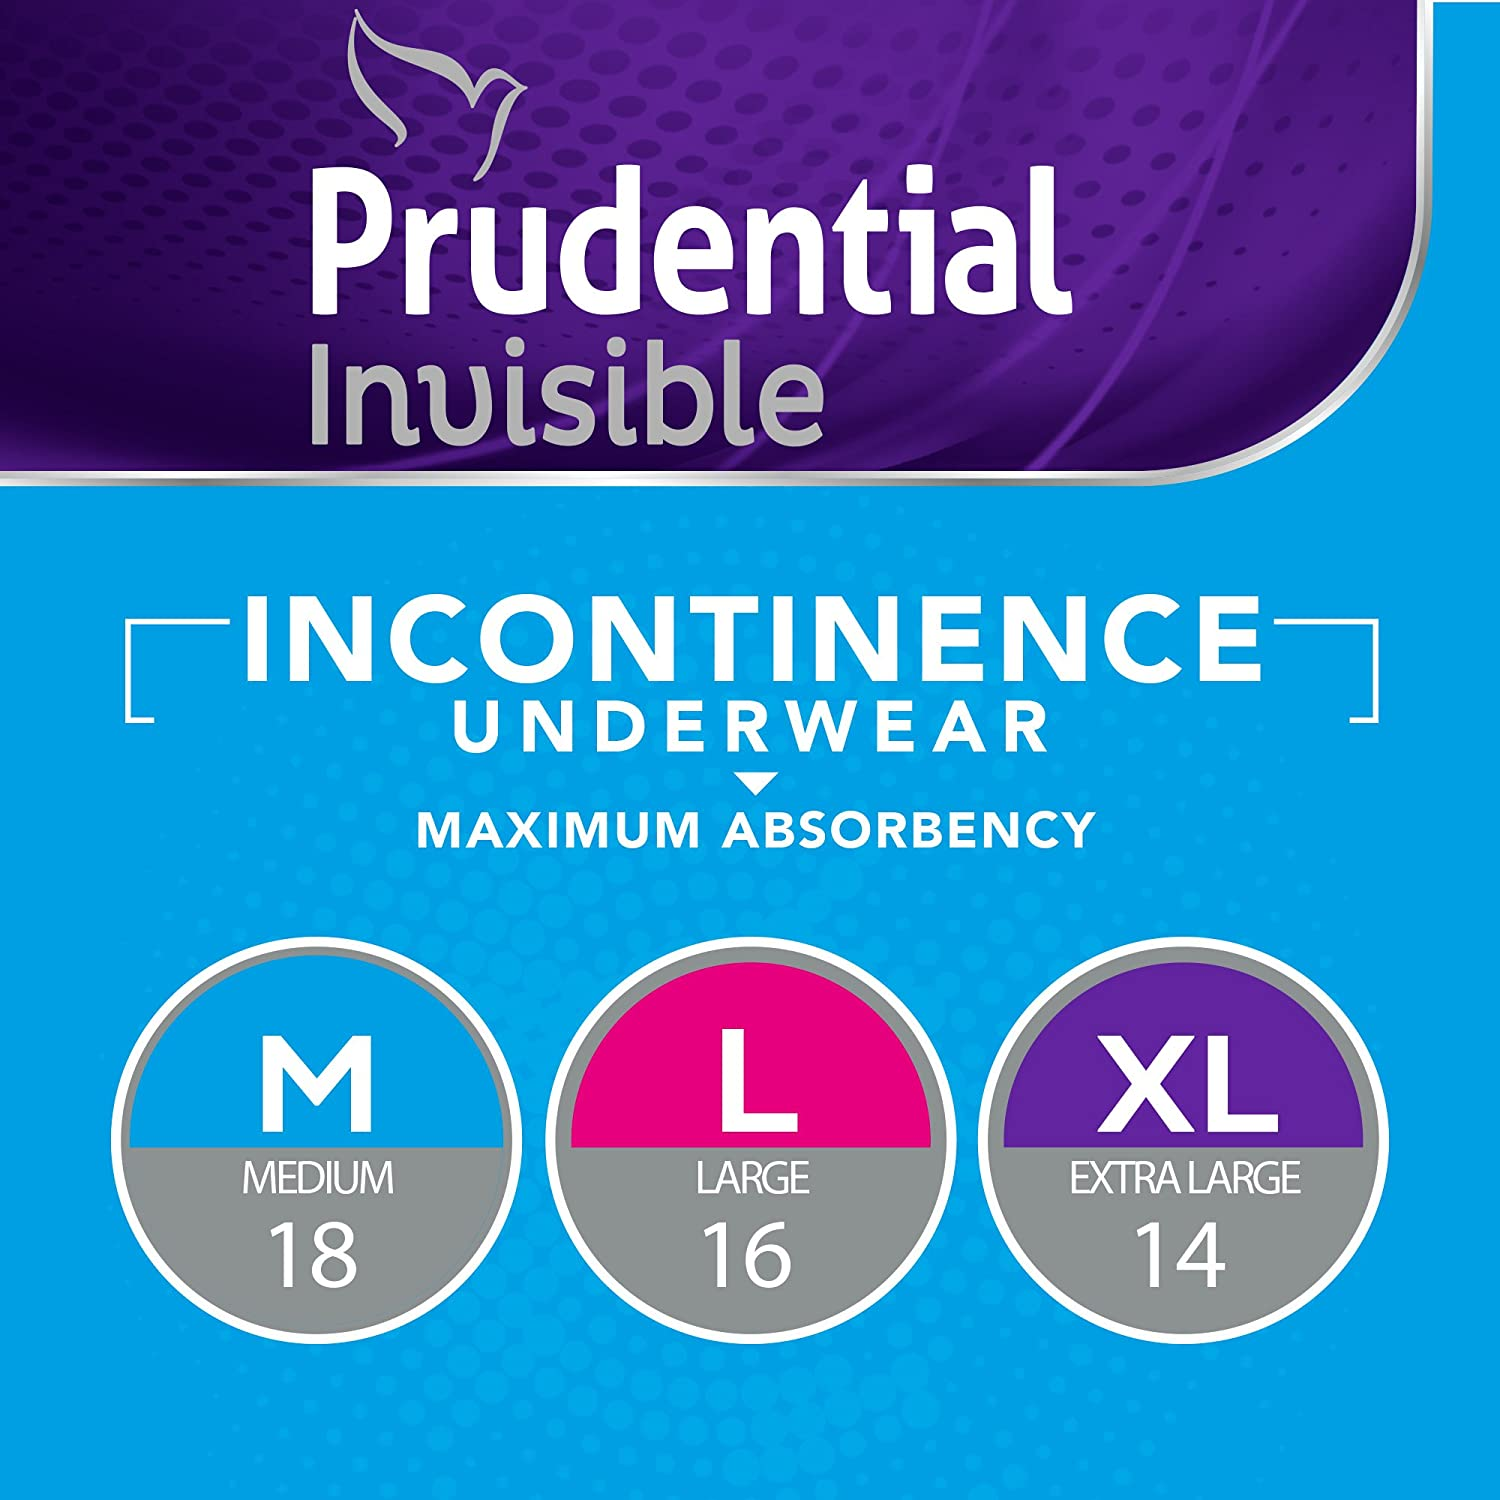 Amazon.com: Prudential Invisible Maximum Absorbency Incontinence Underwear For Men & Women, Extra Large 14 Count (Pack of 4): Health & Personal Care